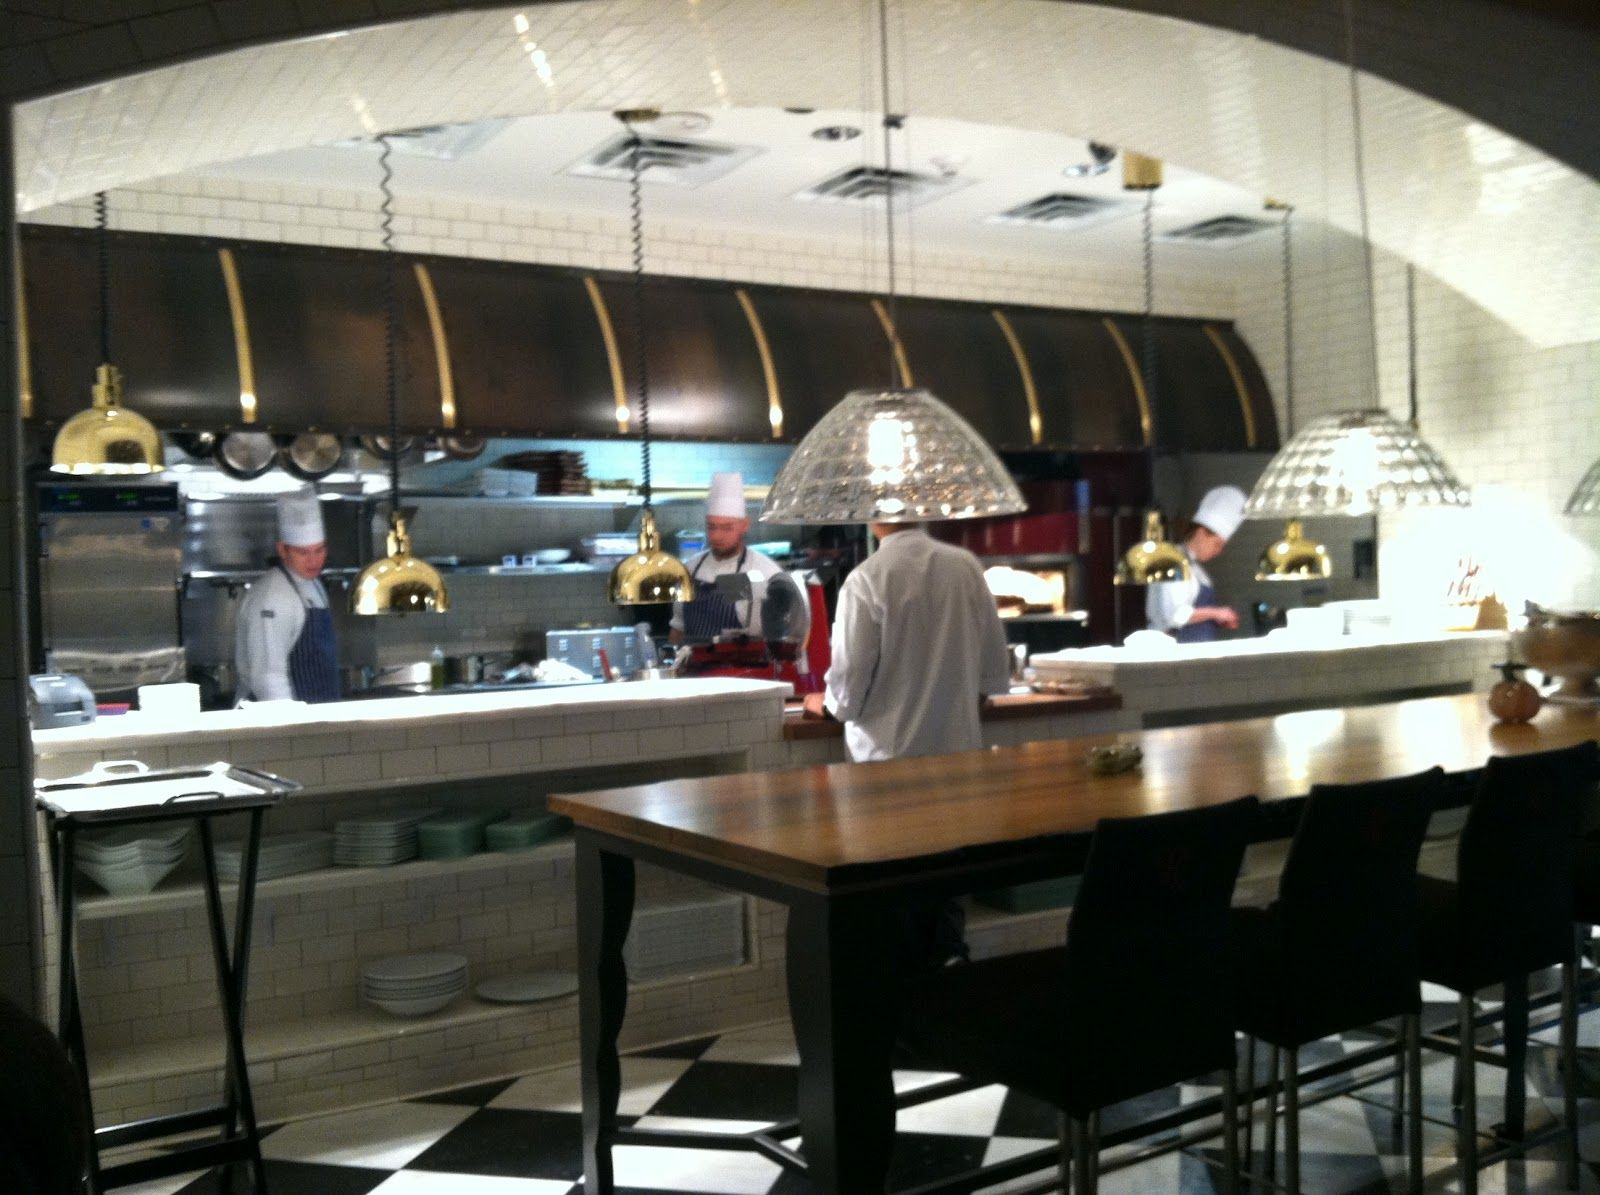 Exceptional Open Kitchen Design Restaurant   Penelusuran Google